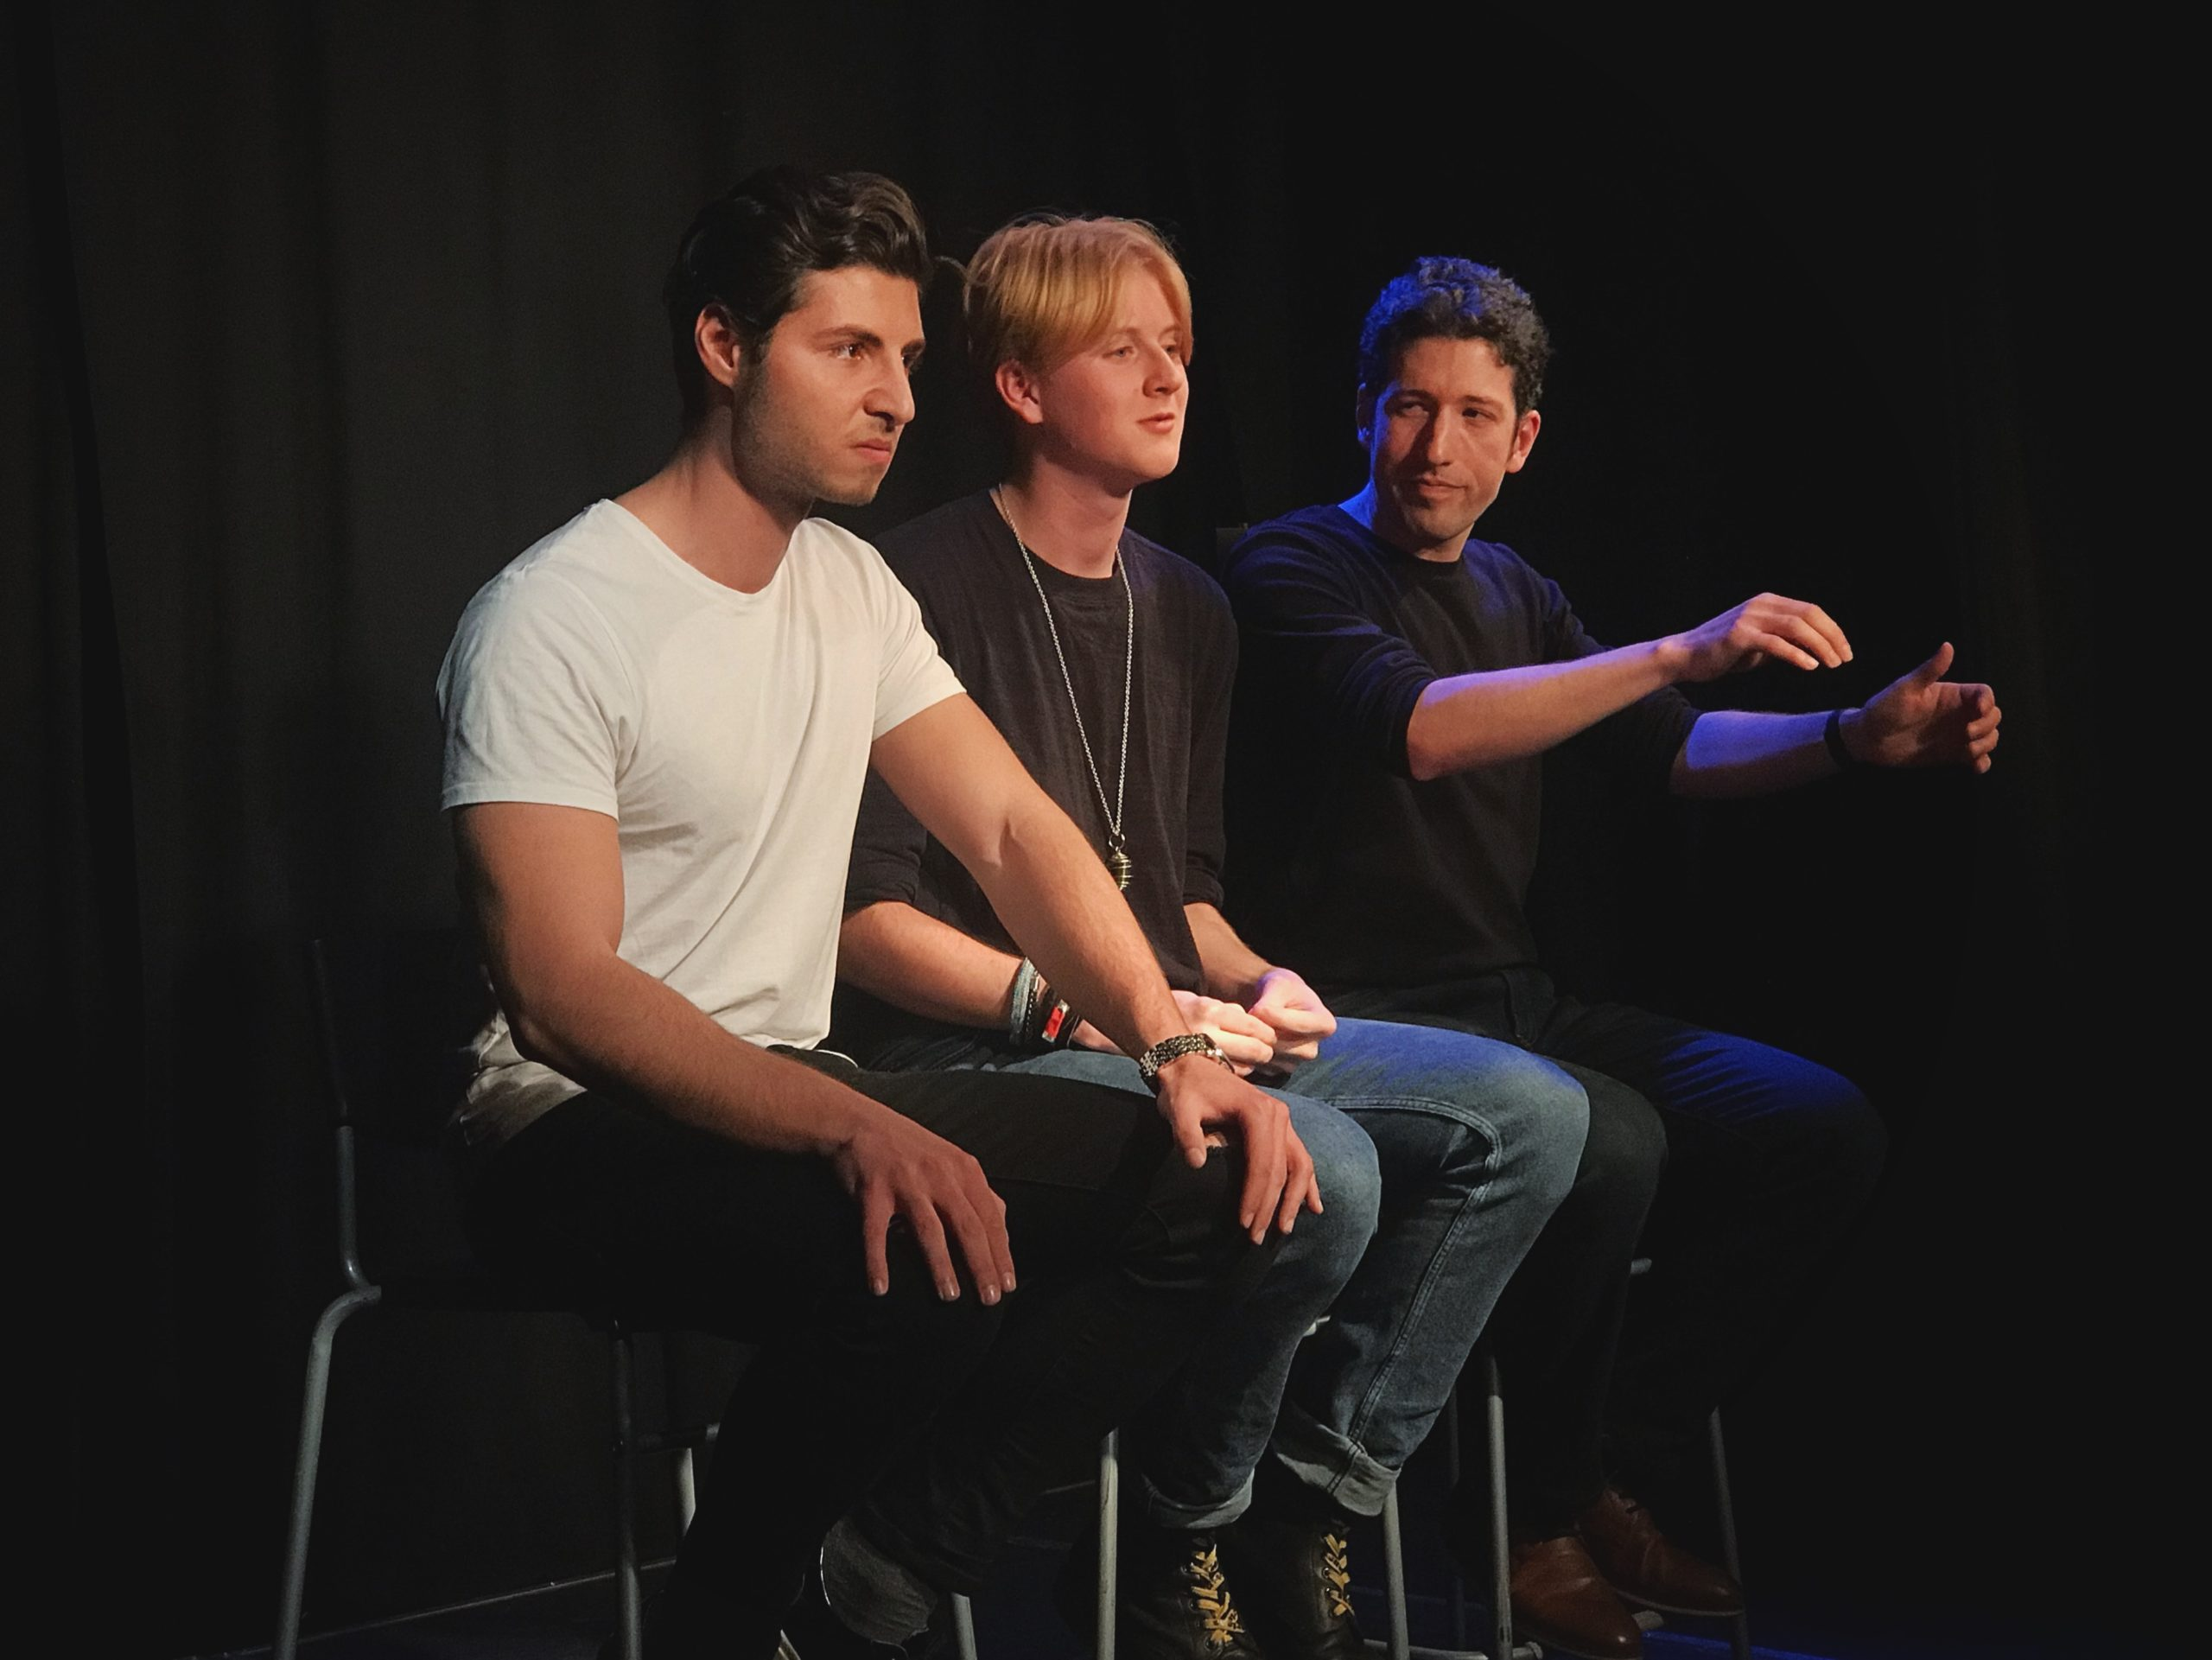 Act Attack's Pure improv show. Three men sit on bar stools. One of them pretends to drive